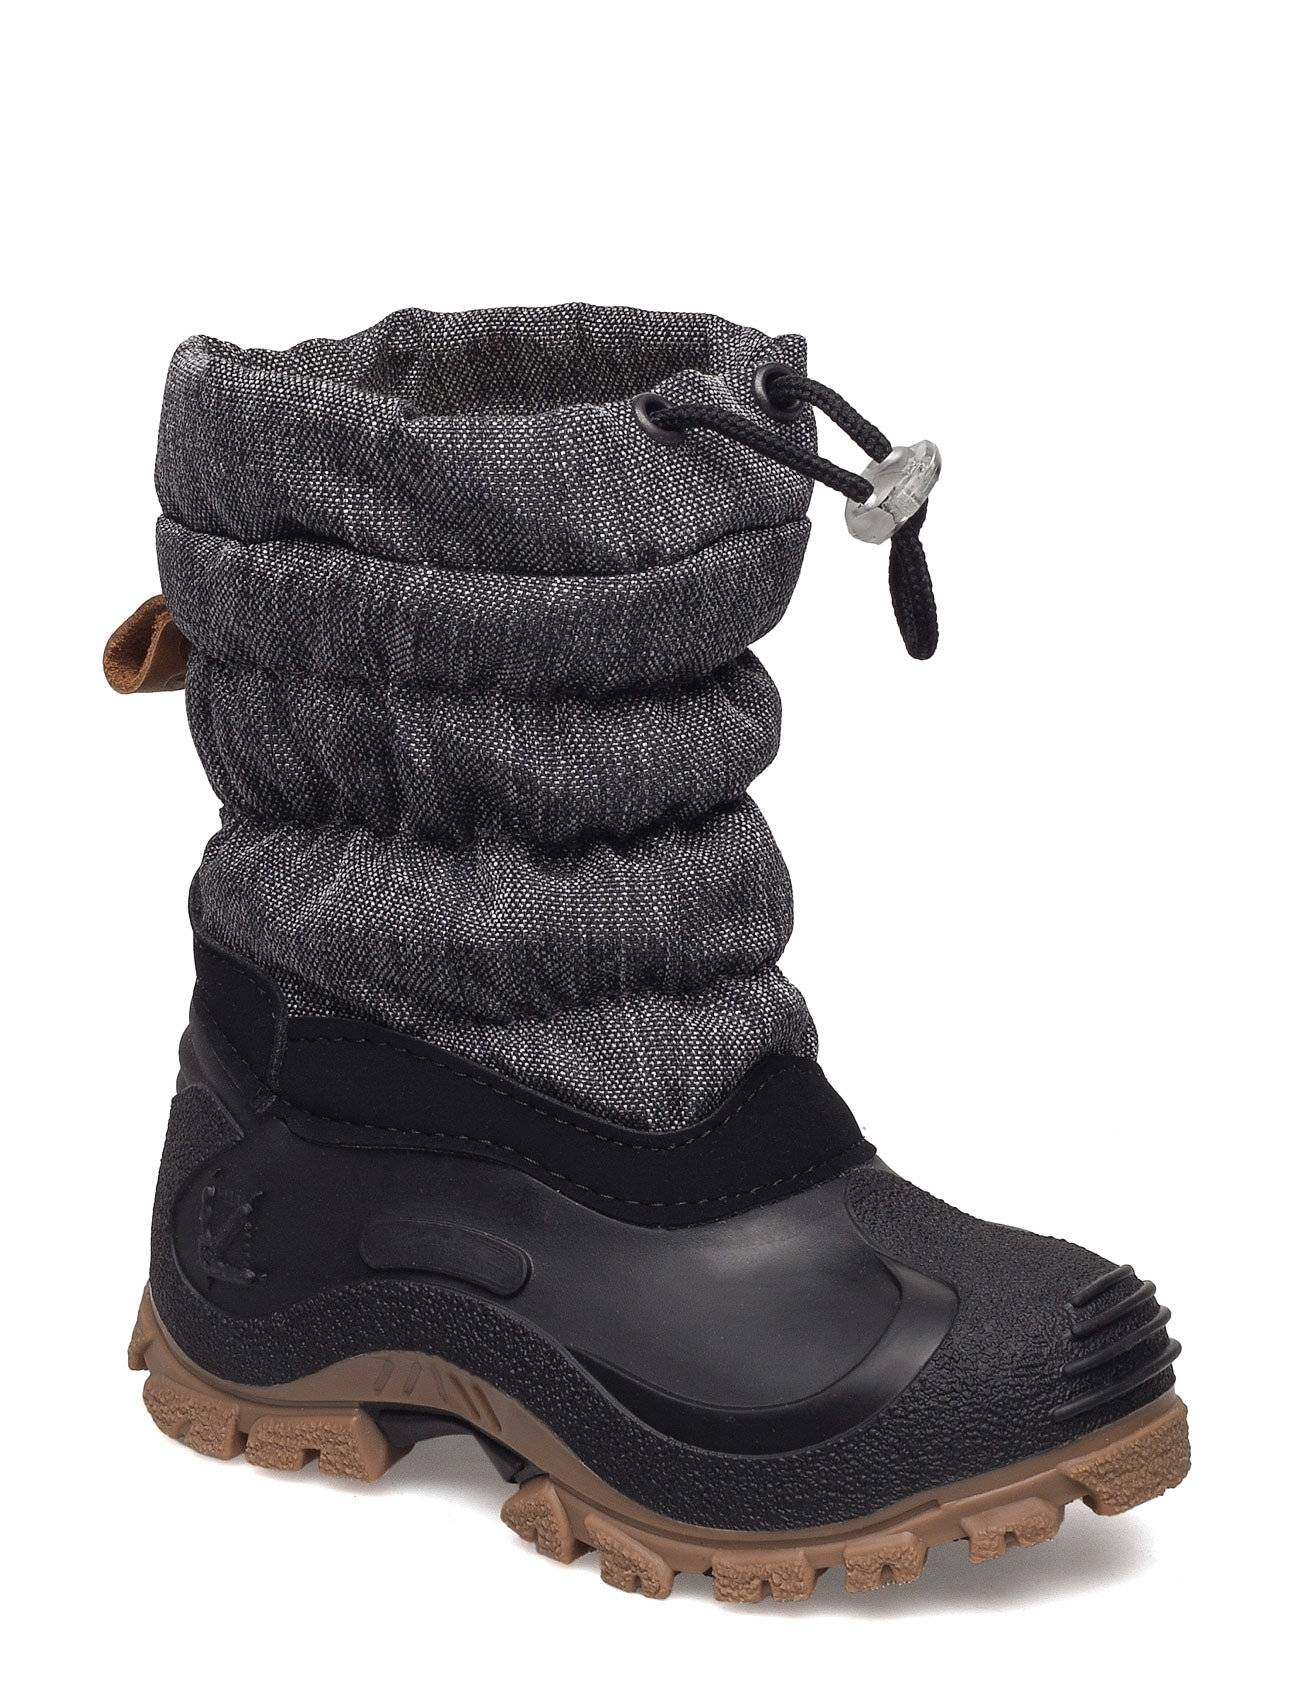 Move by Melton Unisex - Snowboot